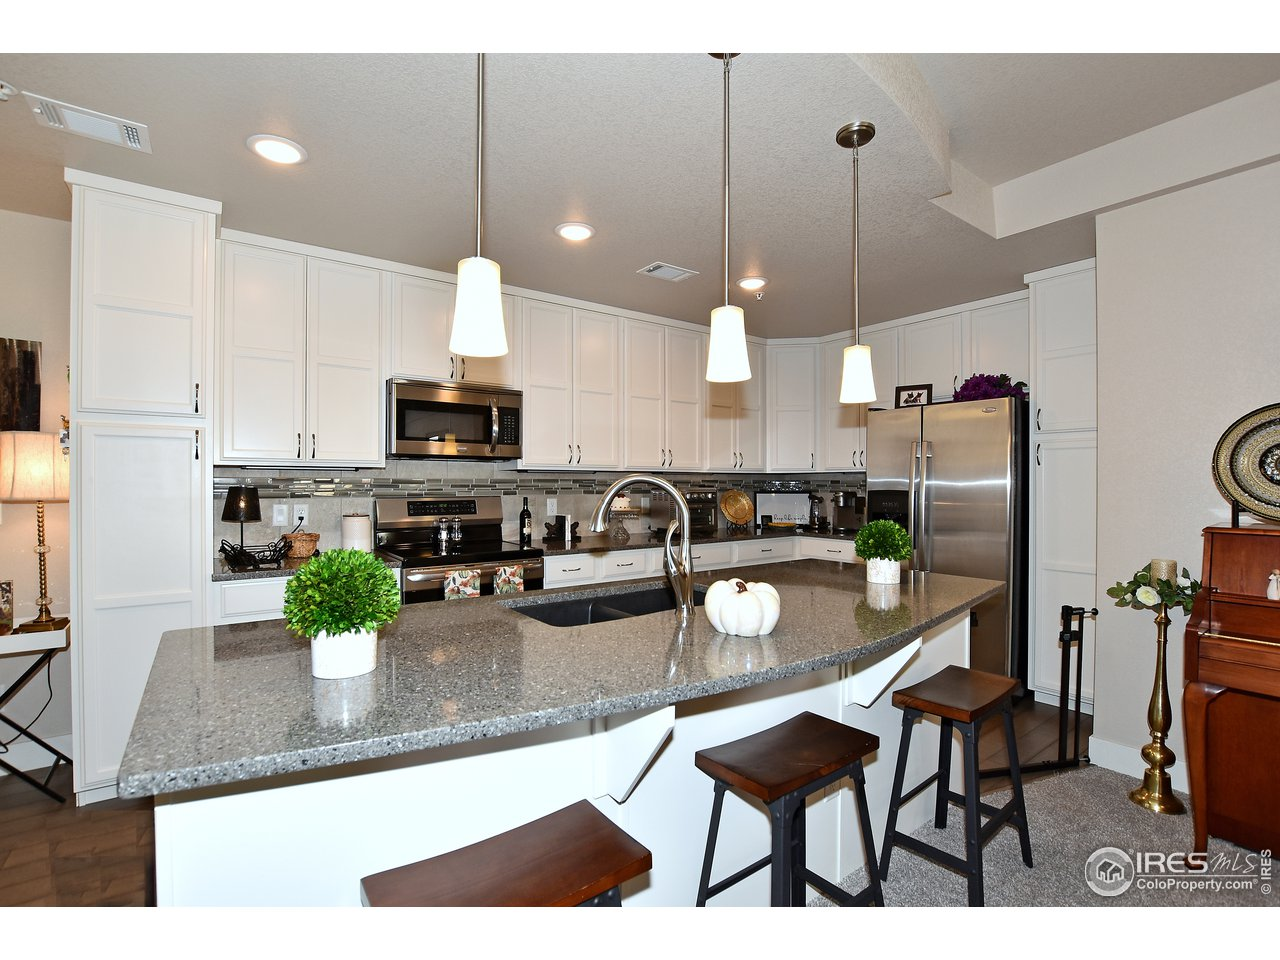 Dual pantries and loads of cabinets and counter space!